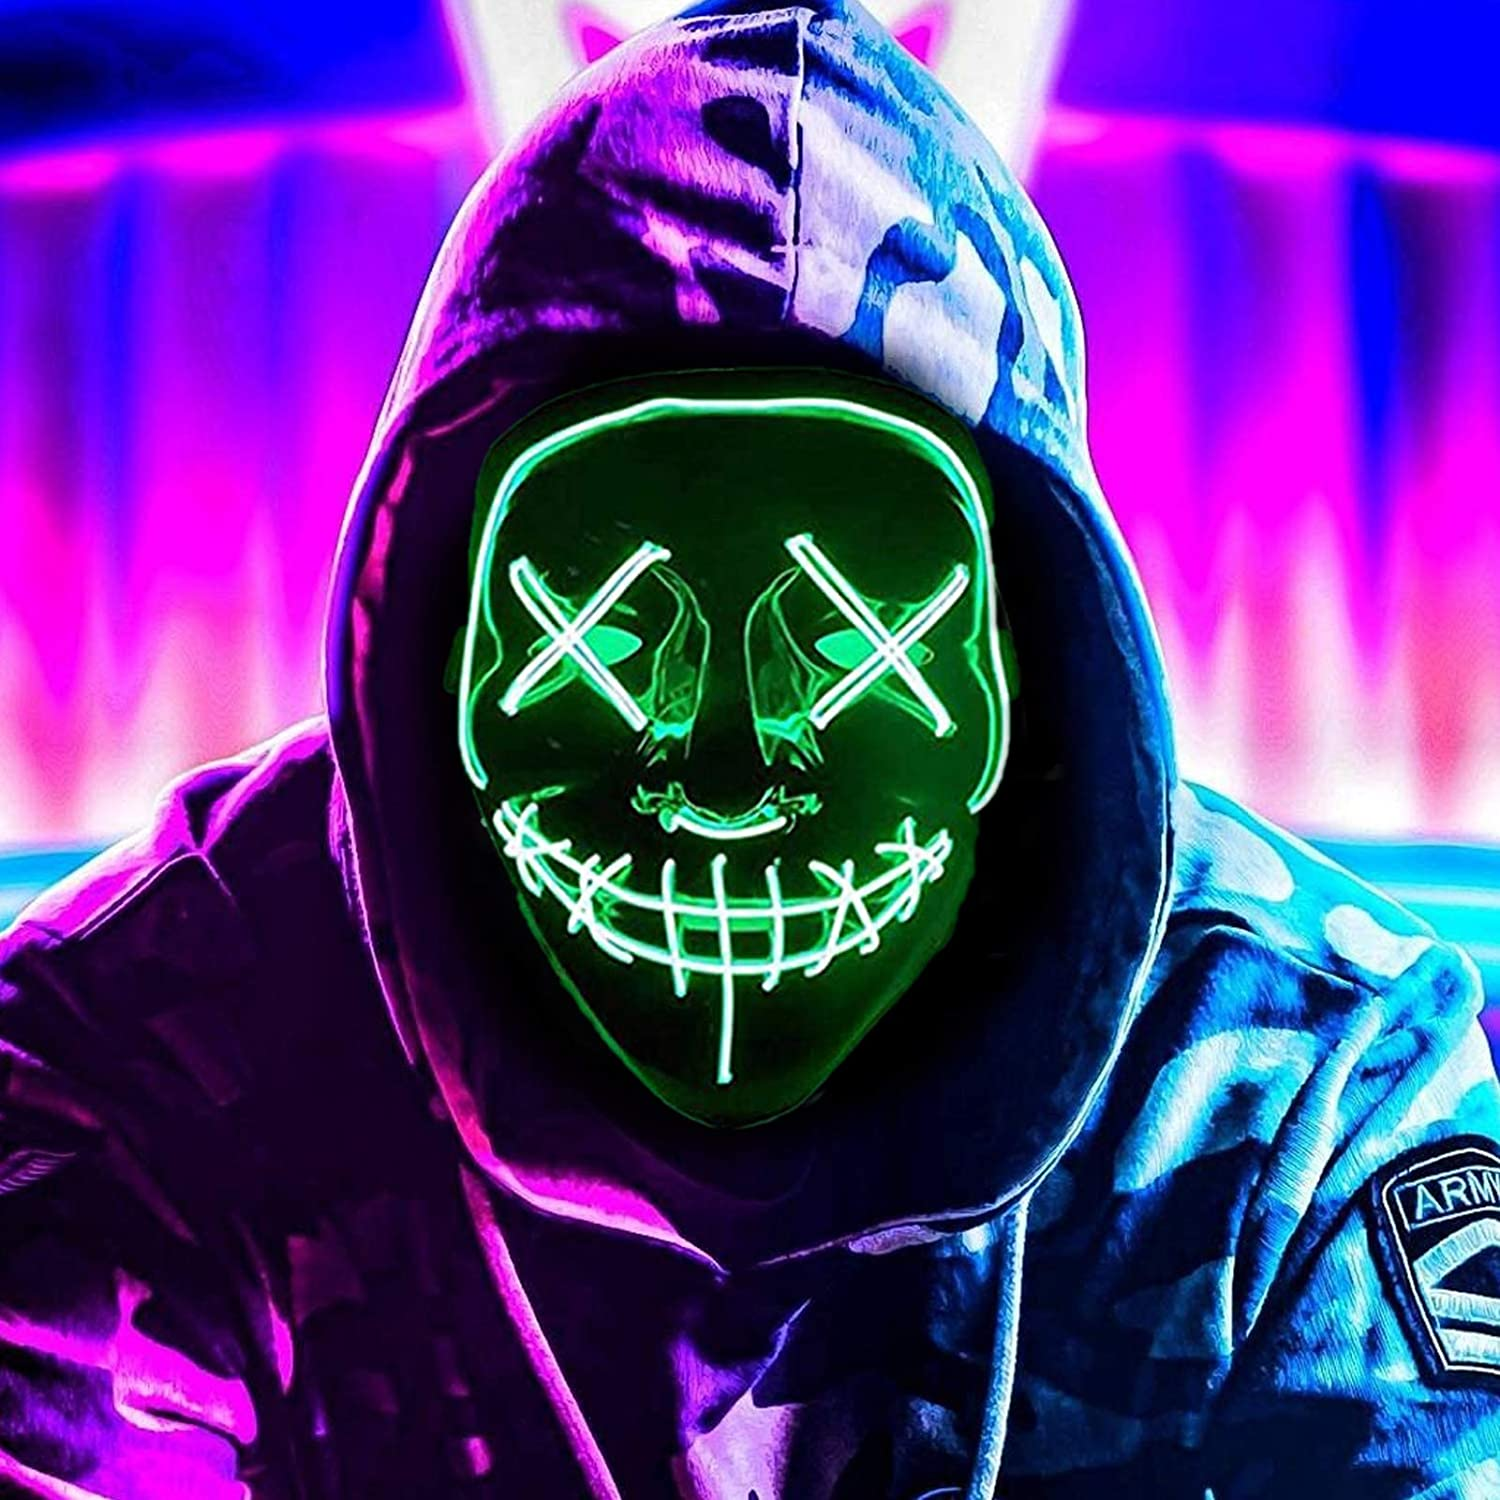 Twinkling with Music Speed Sound Induction Scary Light up Mask for Festival Party Cosplay LED Mask Halloween Purge Mask